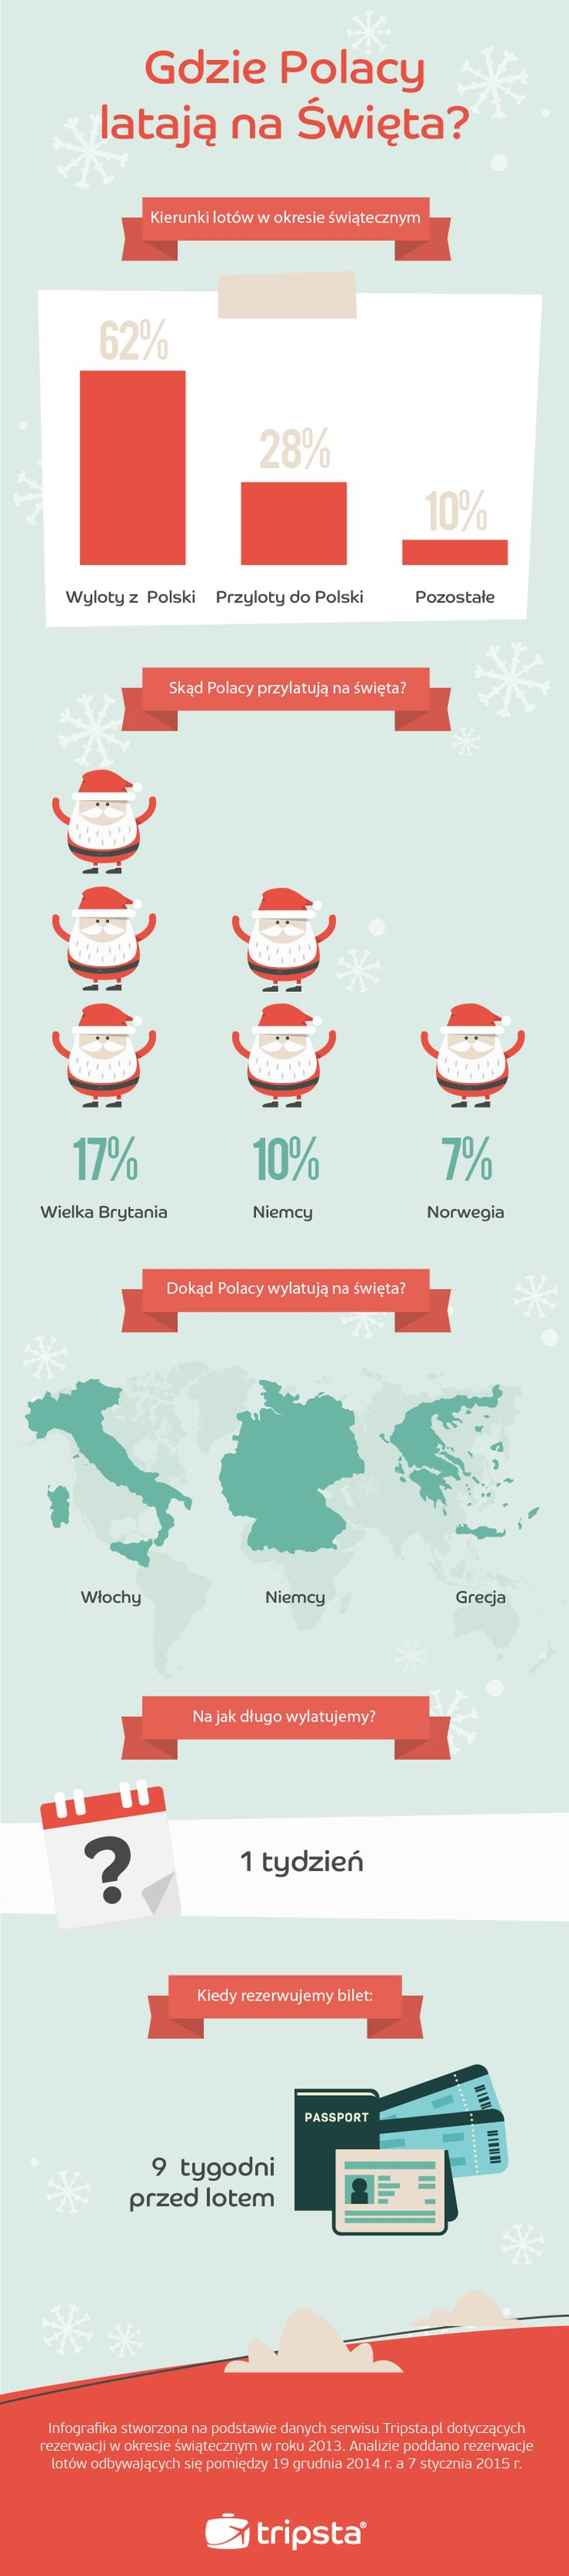 Xmas Travel Trends 2014 for the Polish Market! #tripsta #infographic #xmas #travel #trends